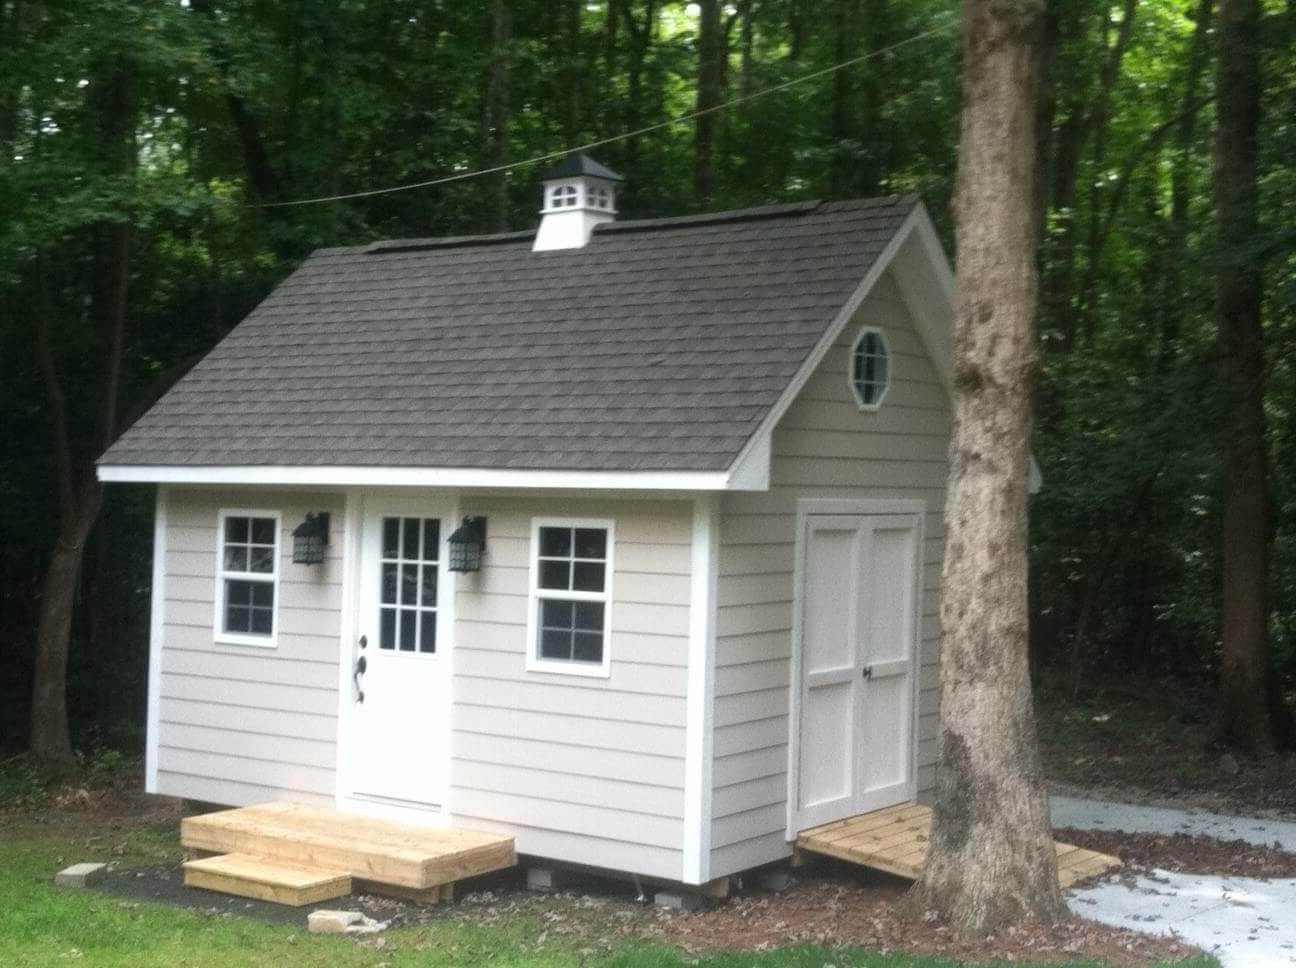 maryland wooden nc cardinal saltbox wv barn raleigh amish md de awesome vinyl storage sheds va